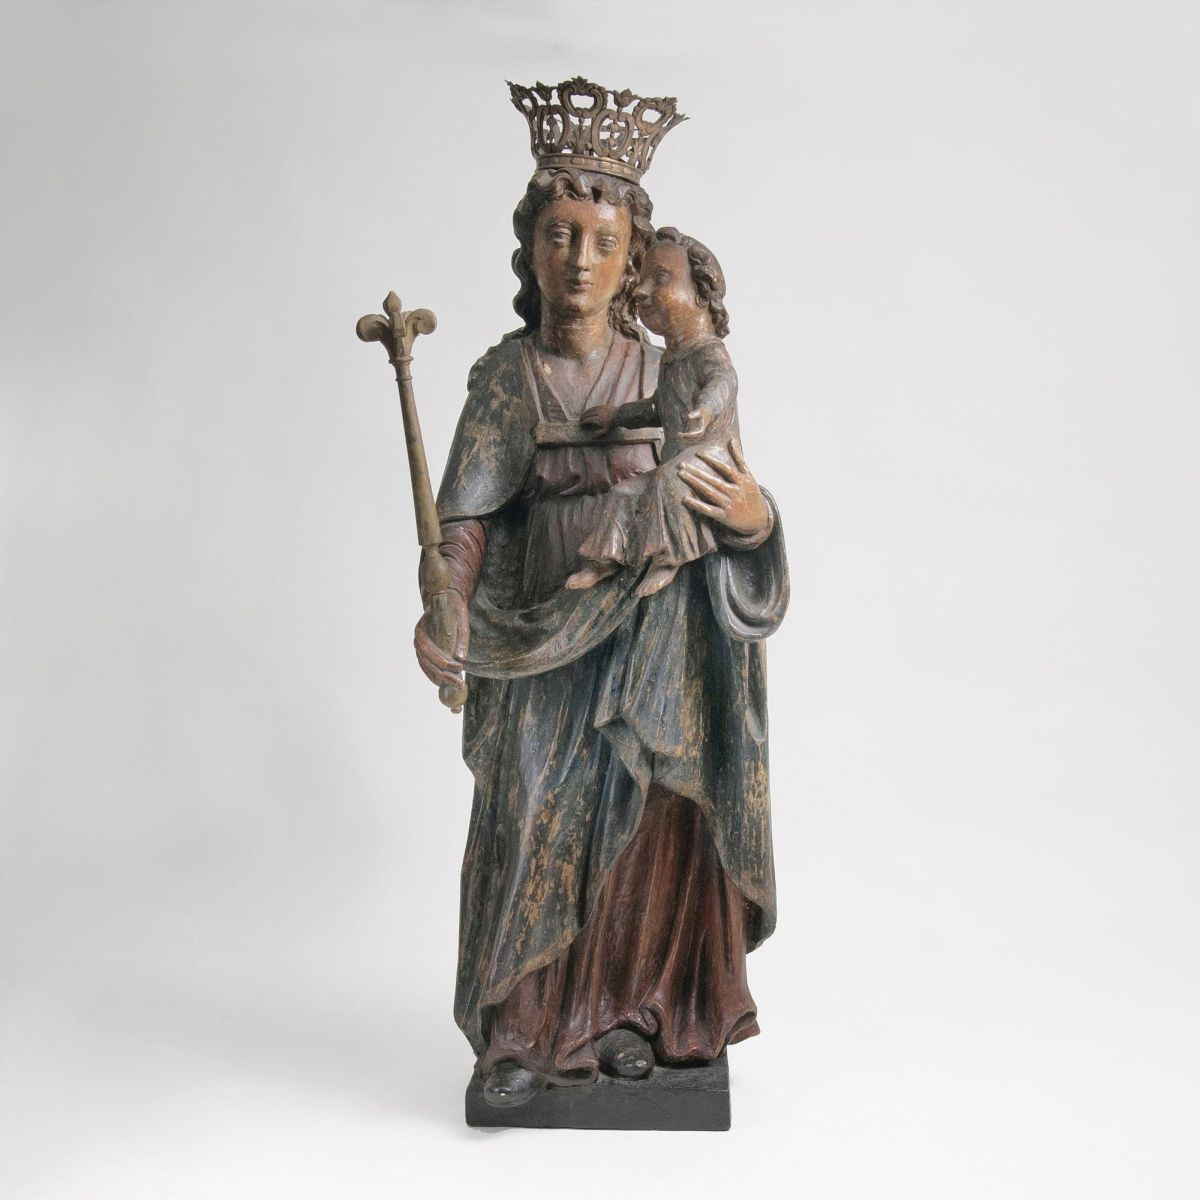 A Sculpture 'Mary with Child'